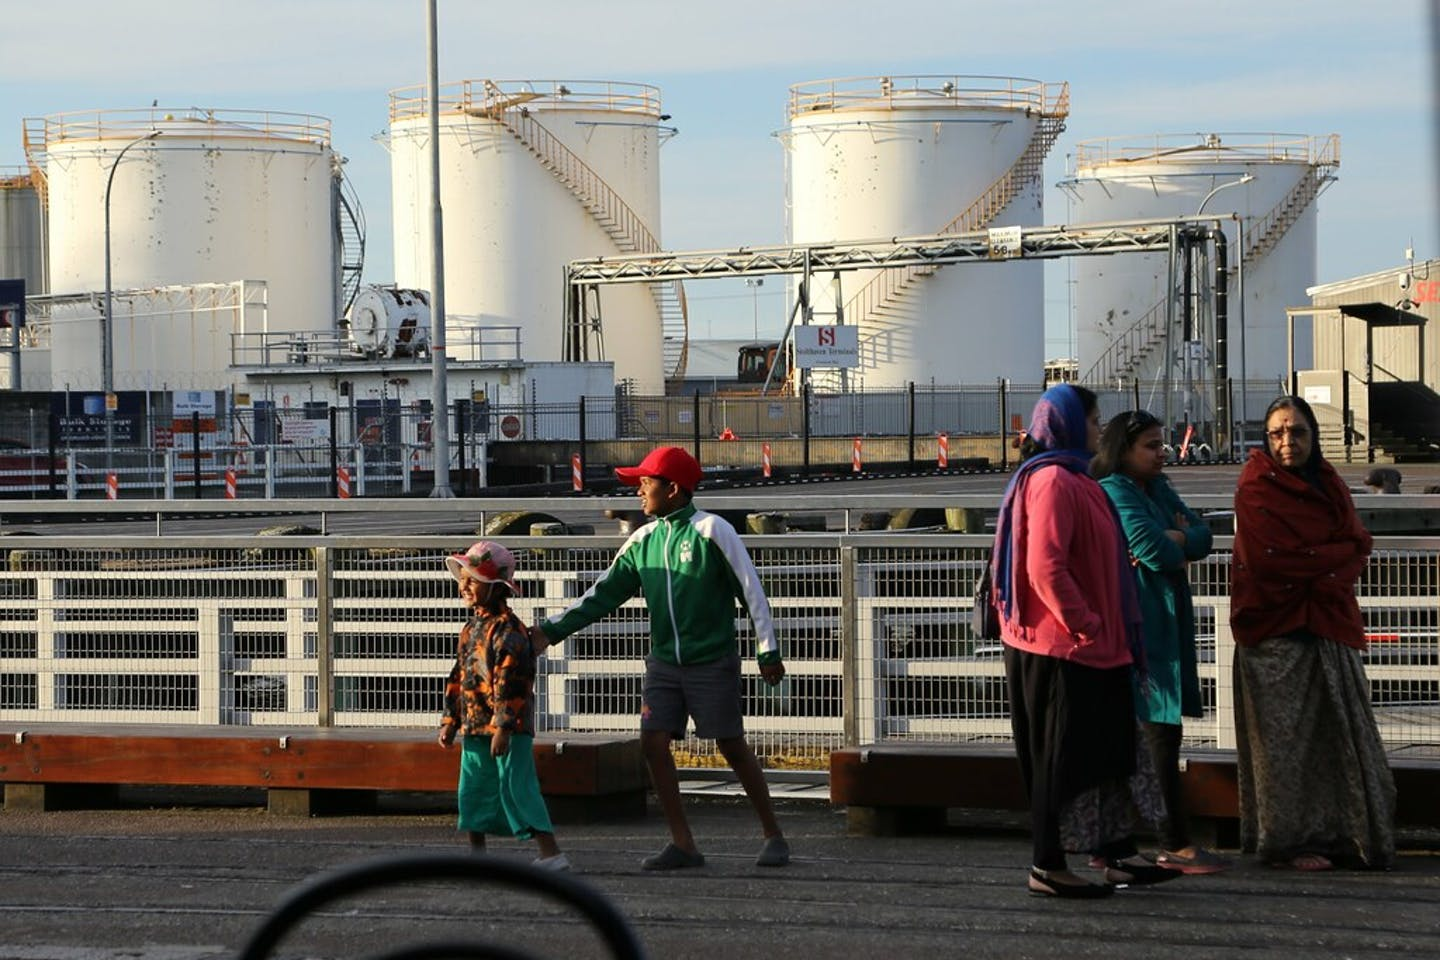 Oil storage tanks at the Wynyard Quarter in Auckland, New Zealand